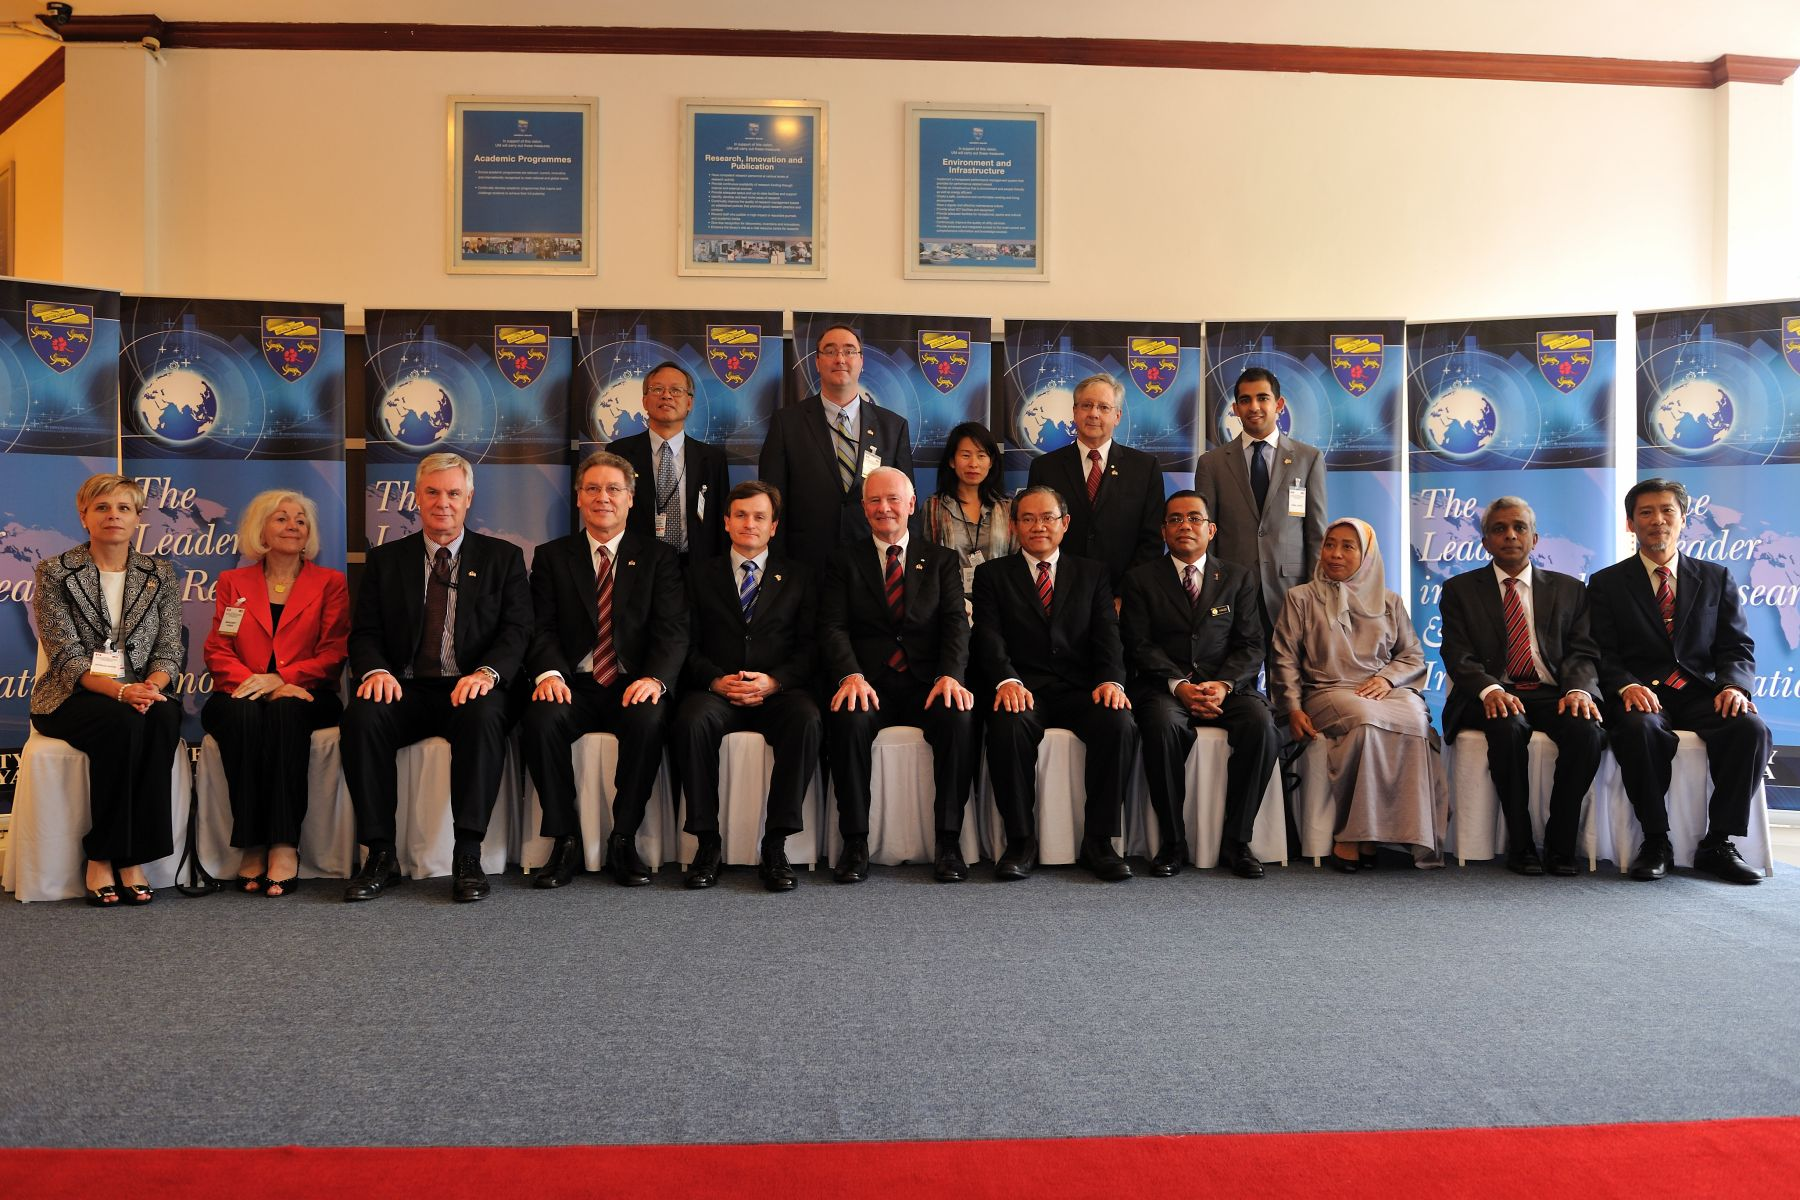 His Excellency visited the University of Malaya where he met with university personel.